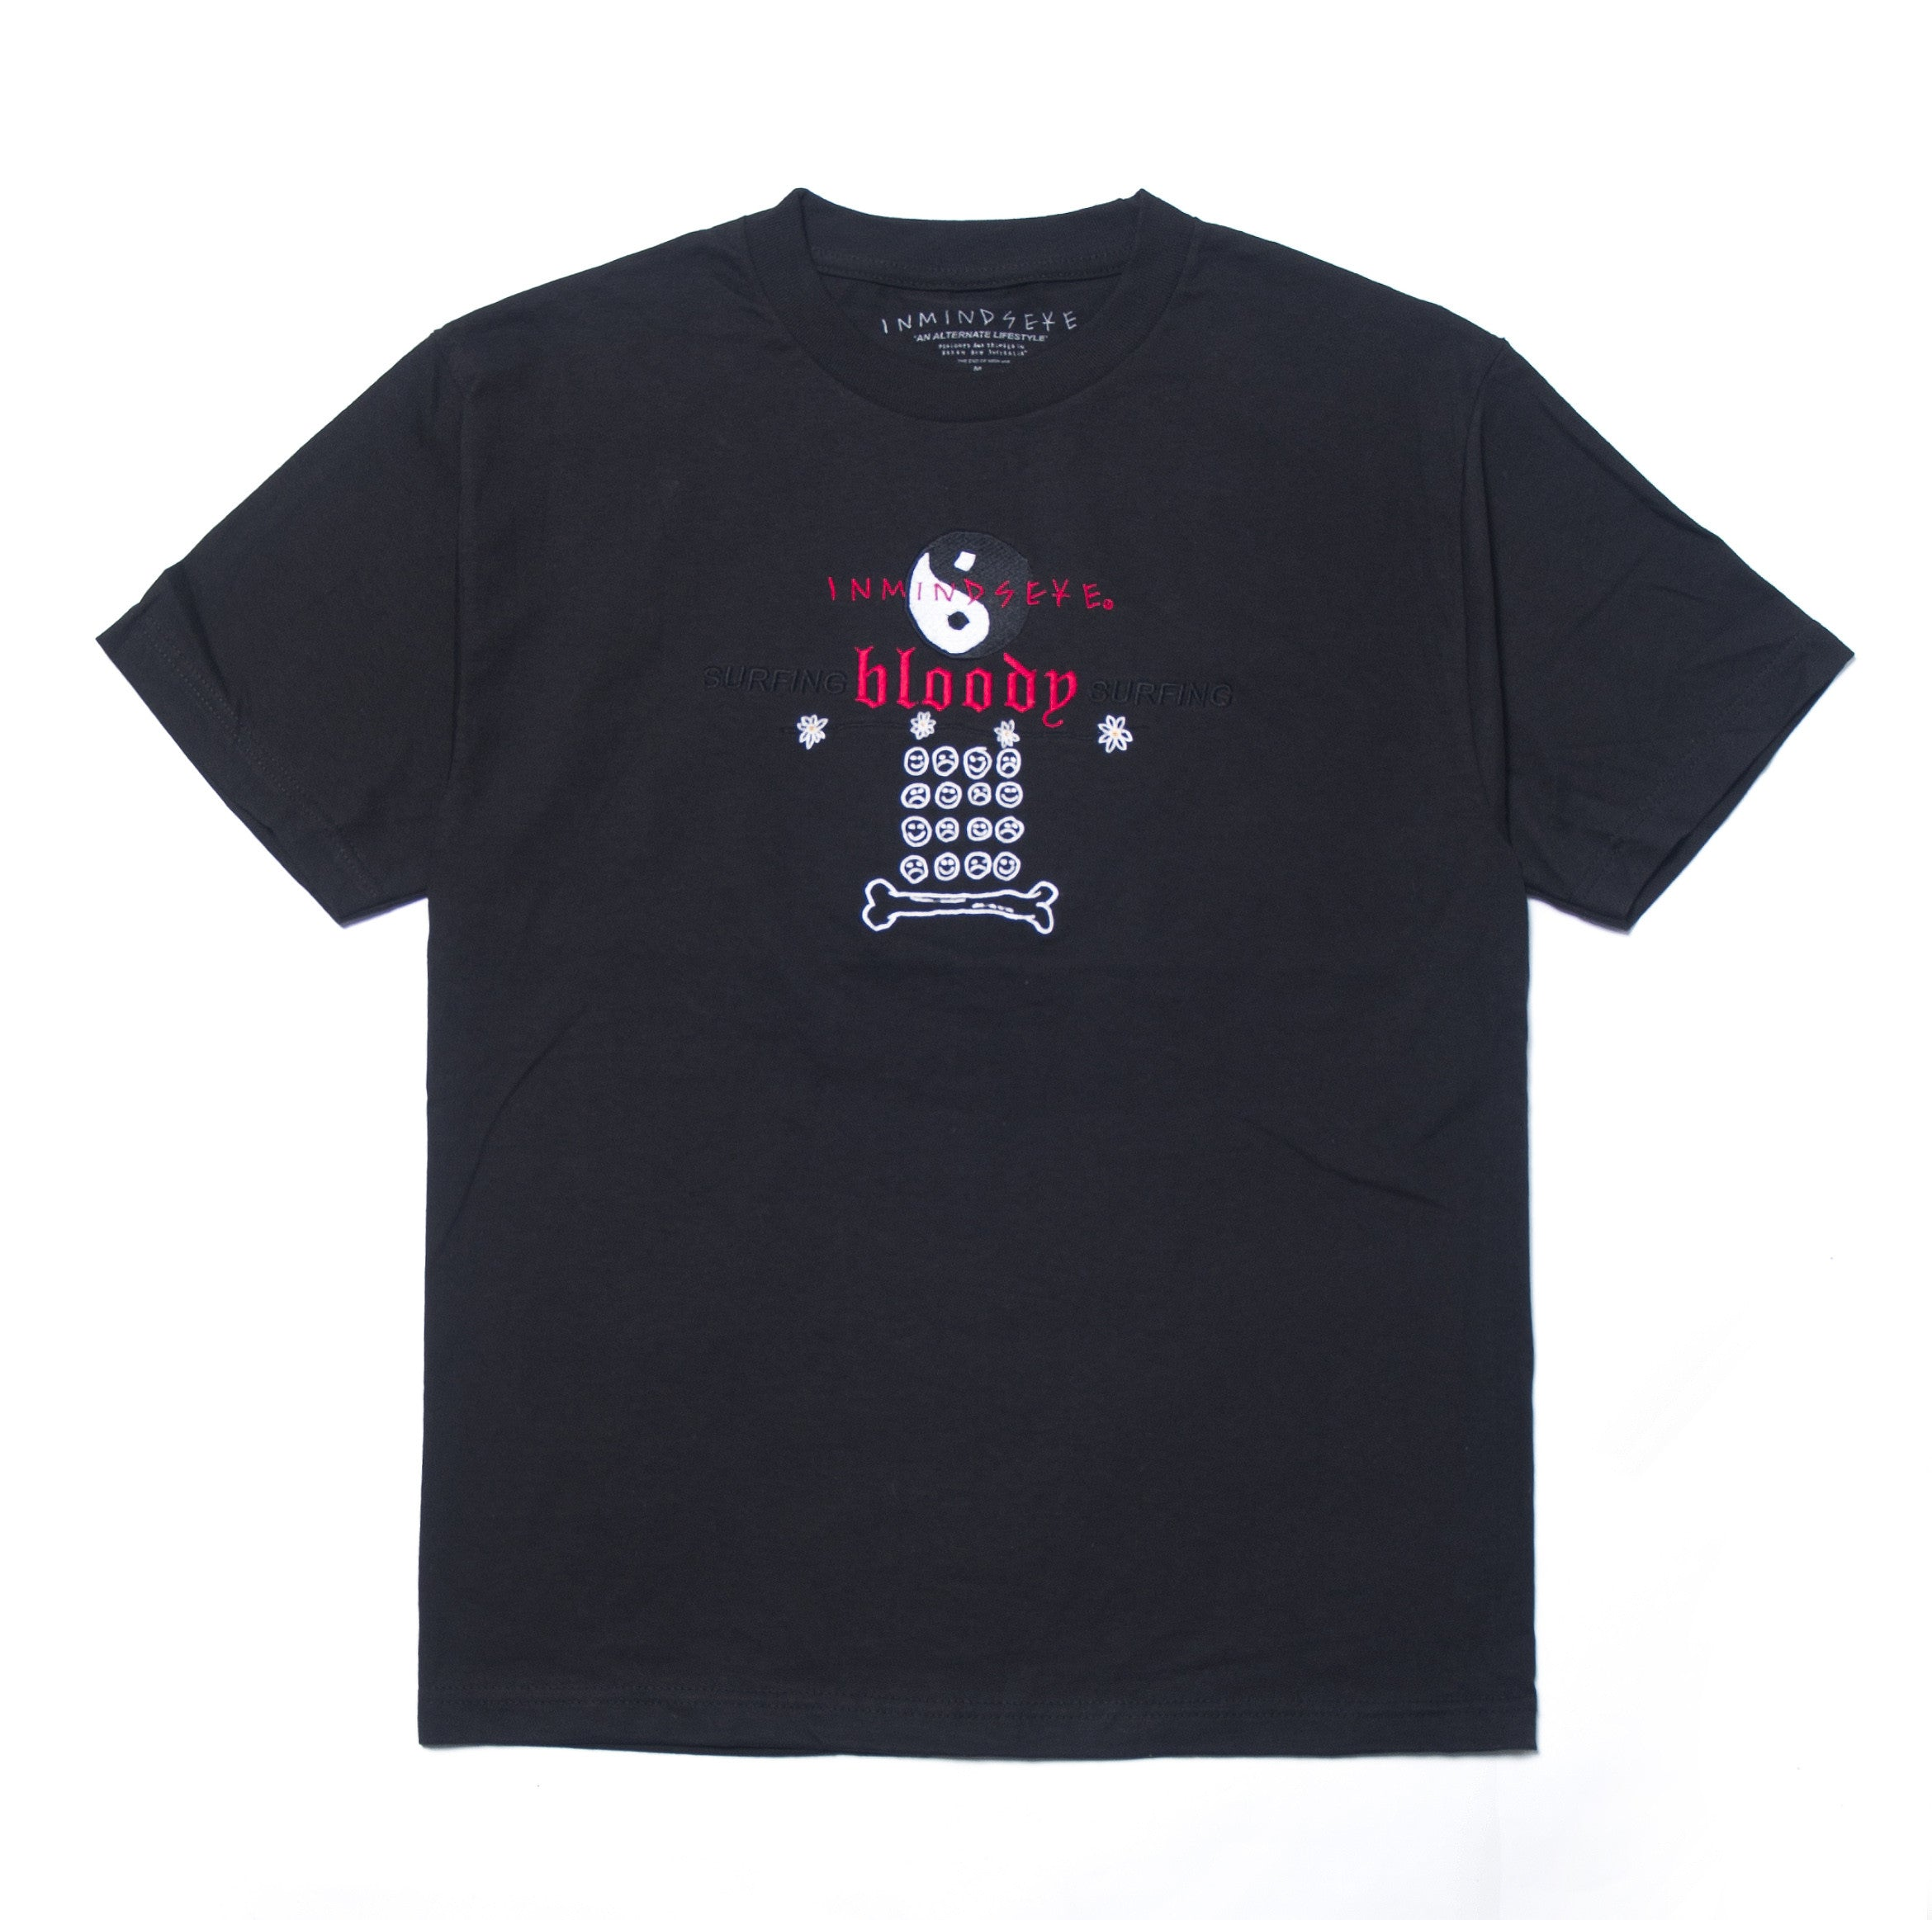 SURFING BLOODY SURFING tee / black